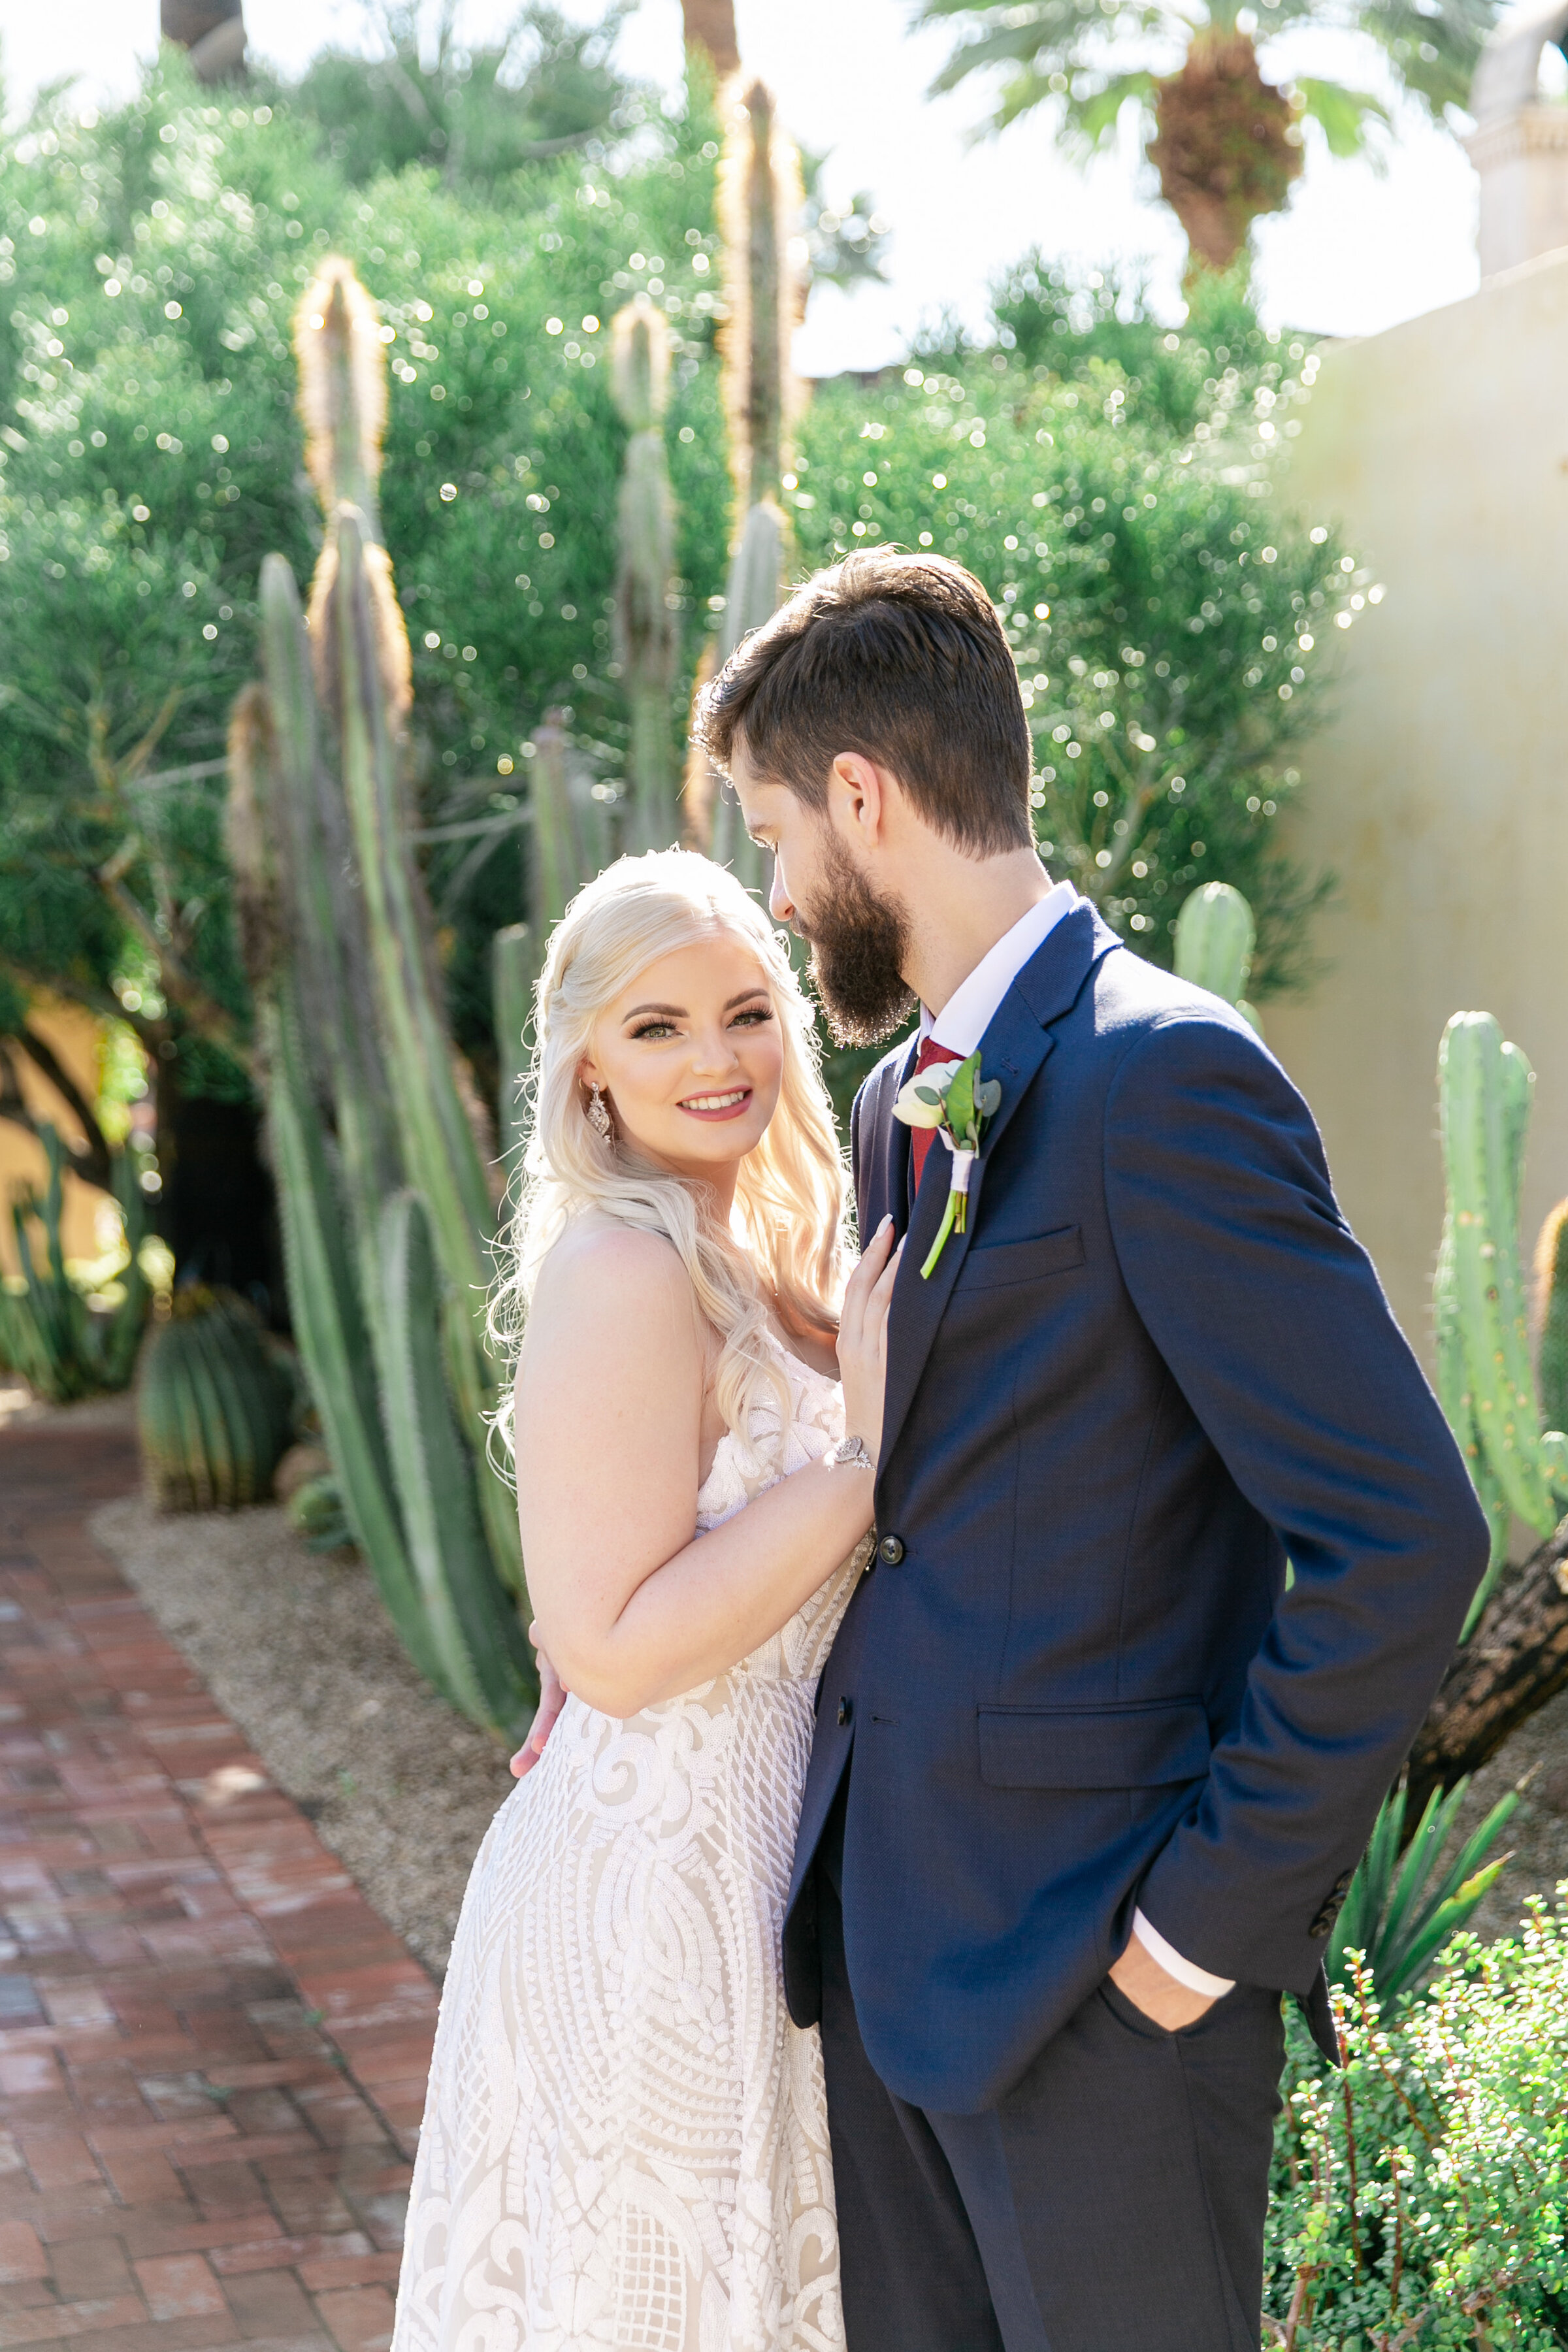 Karlie Colleen Photography - The Royal Palms Wedding - Some Like It Classic - Alex & Sam-152